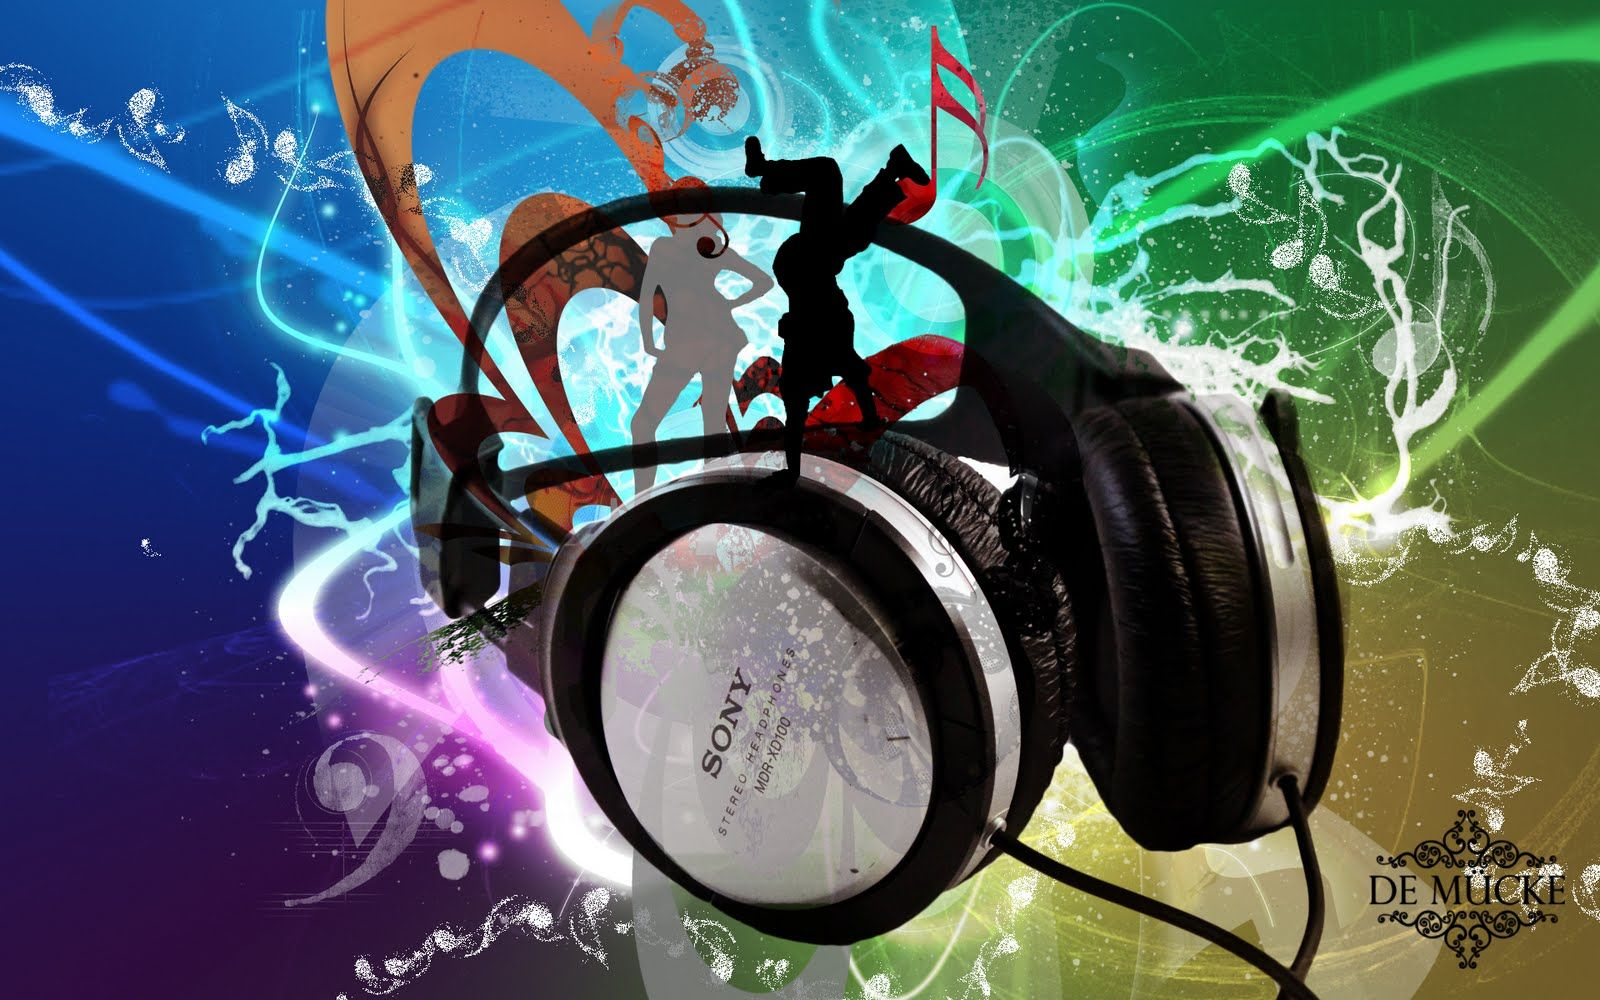 3d Music Hd Wallpapers Pics Cool Music Background Wallpapers Music Wallpaper Music Headphones Music Backgrounds